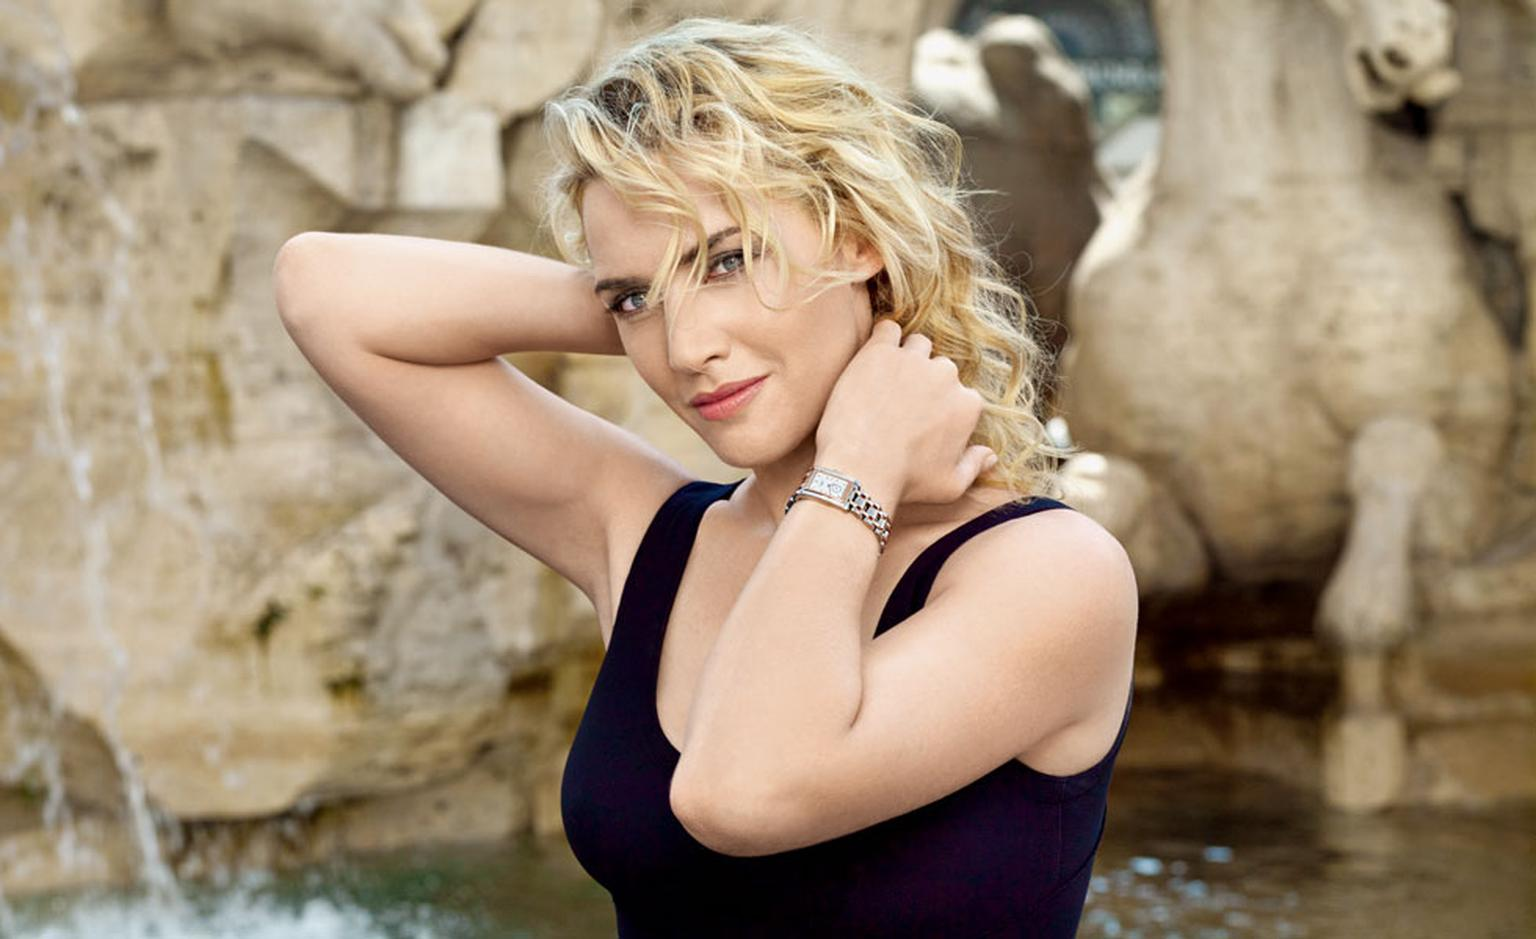 Kate Winslet enjoys La Dolce Vita in Rome